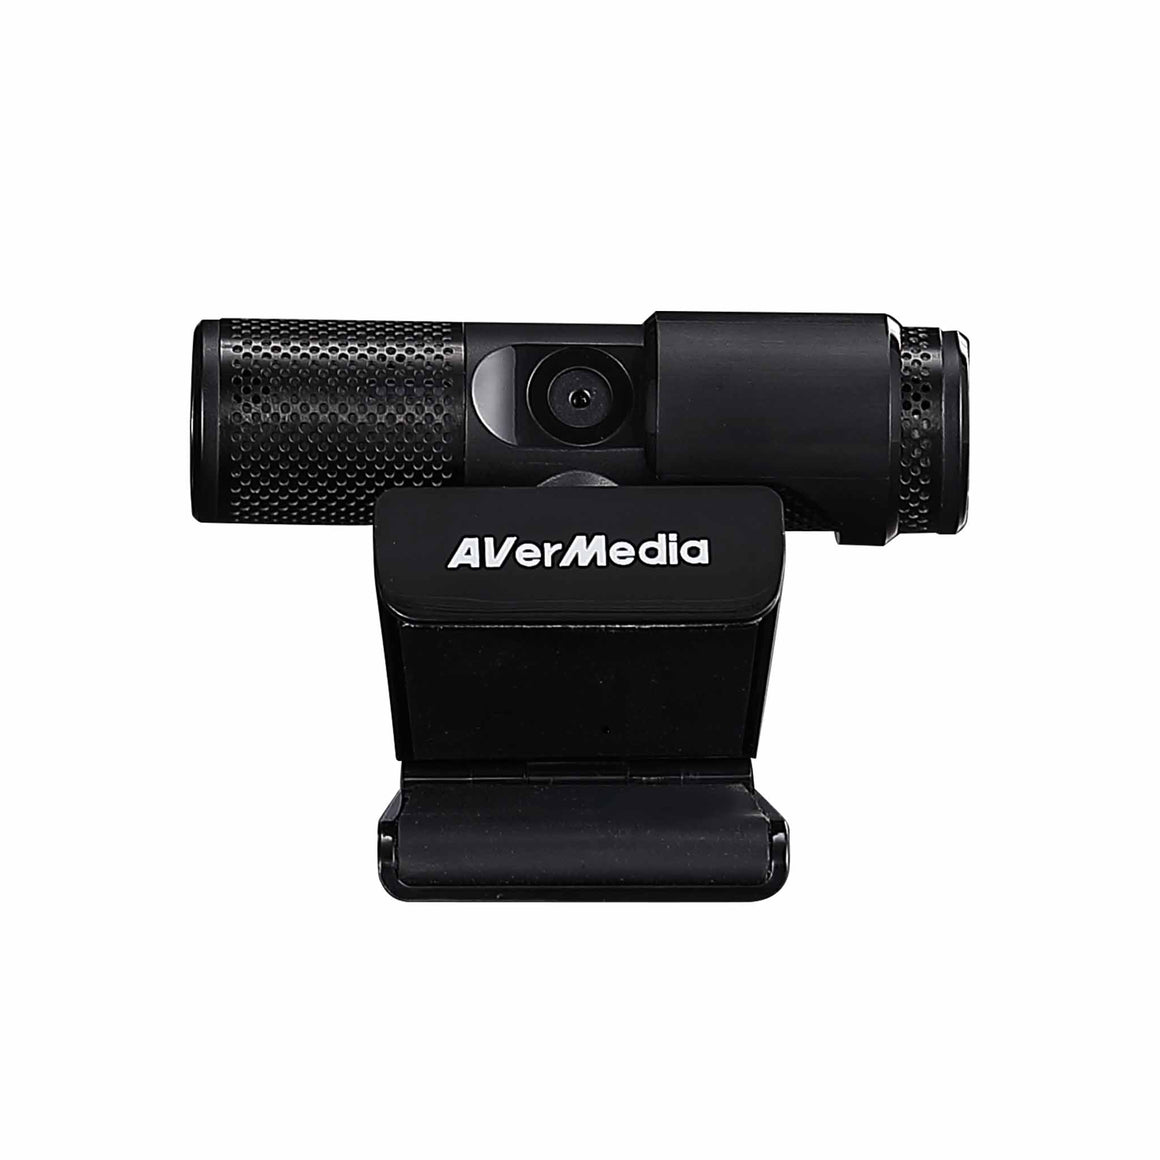 avermedia Live Streamer CAM 313 is the best USB webcam easy to use plug and play that records in Full HD for podcasting, streaming, and gaming for desktop and laptop